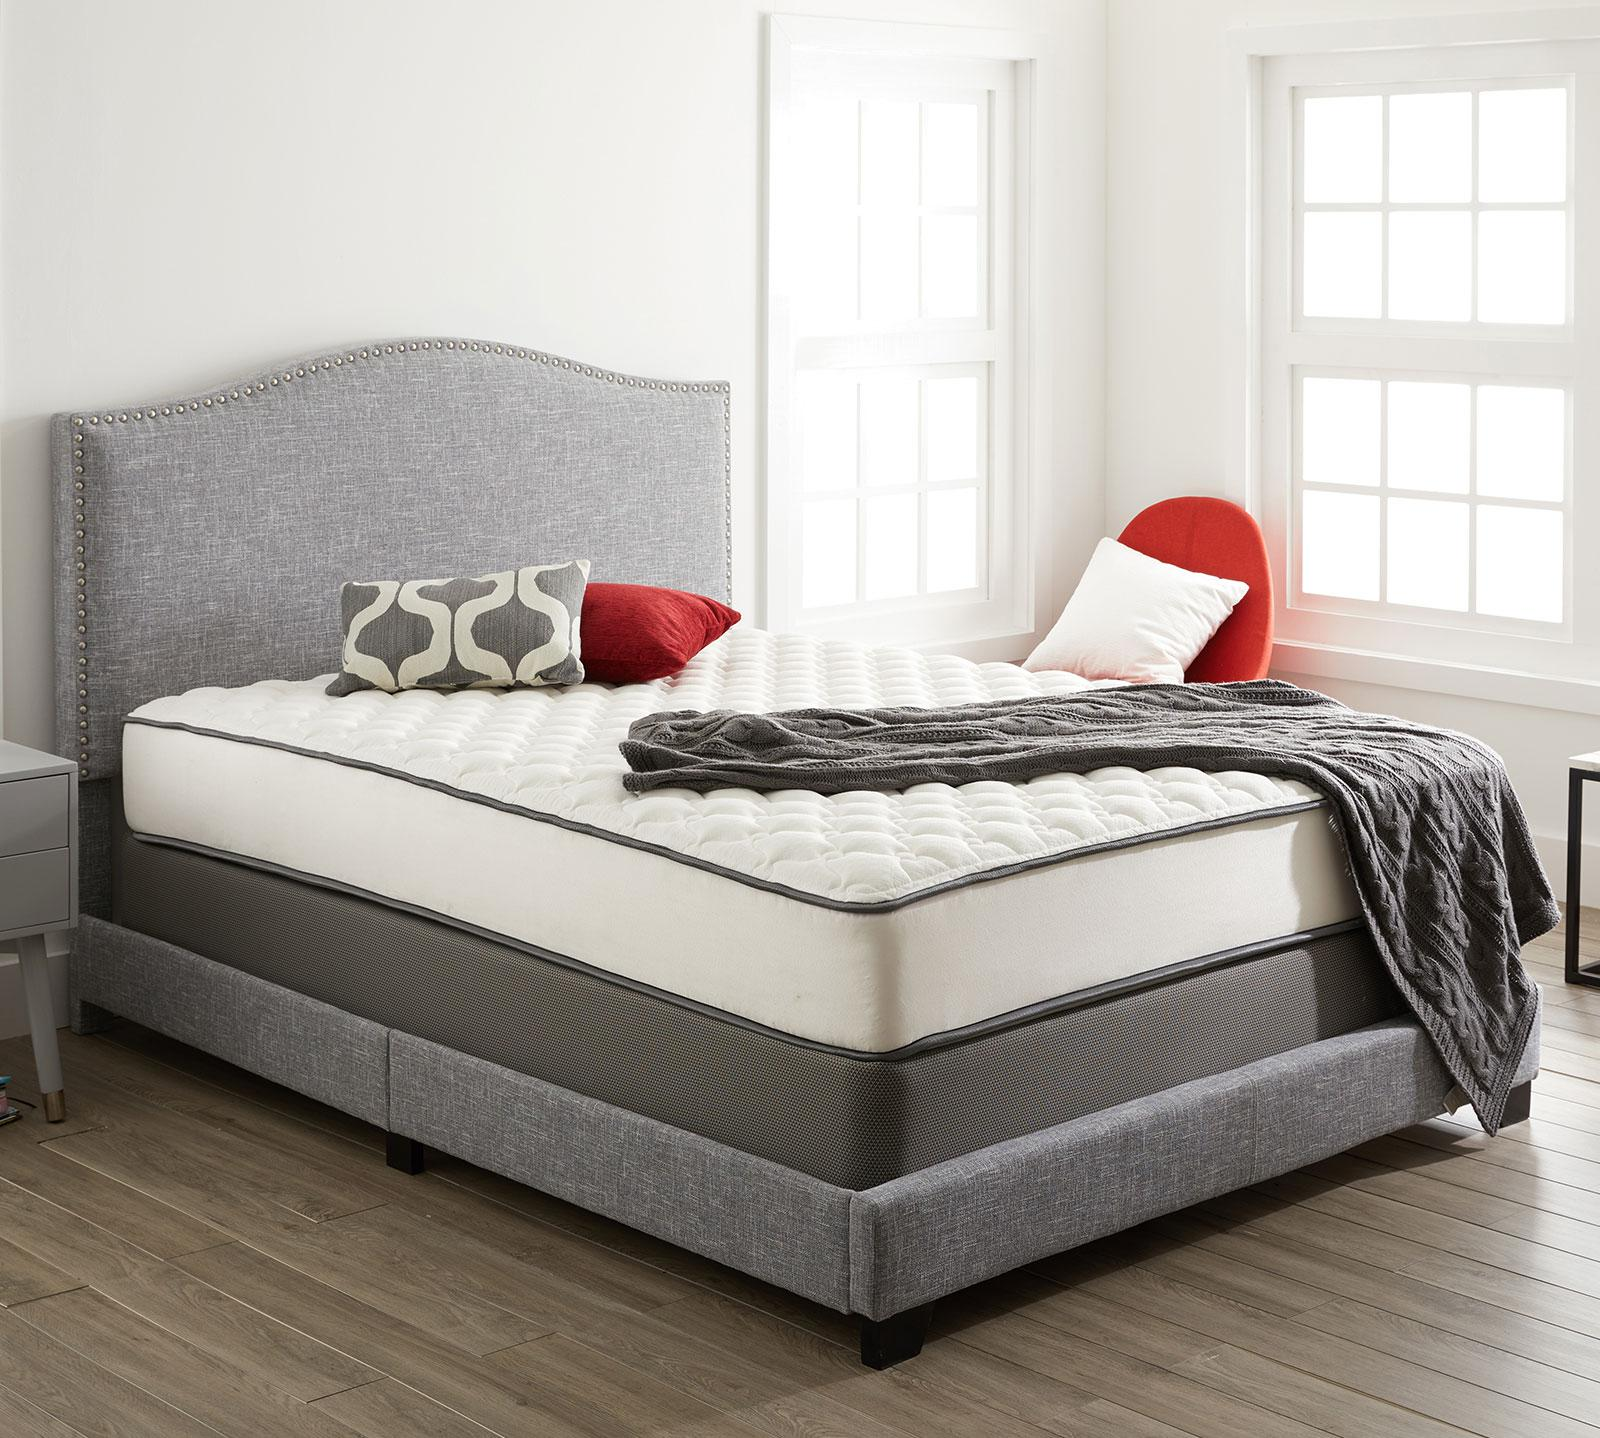 greenwood 9 5 firm mattress